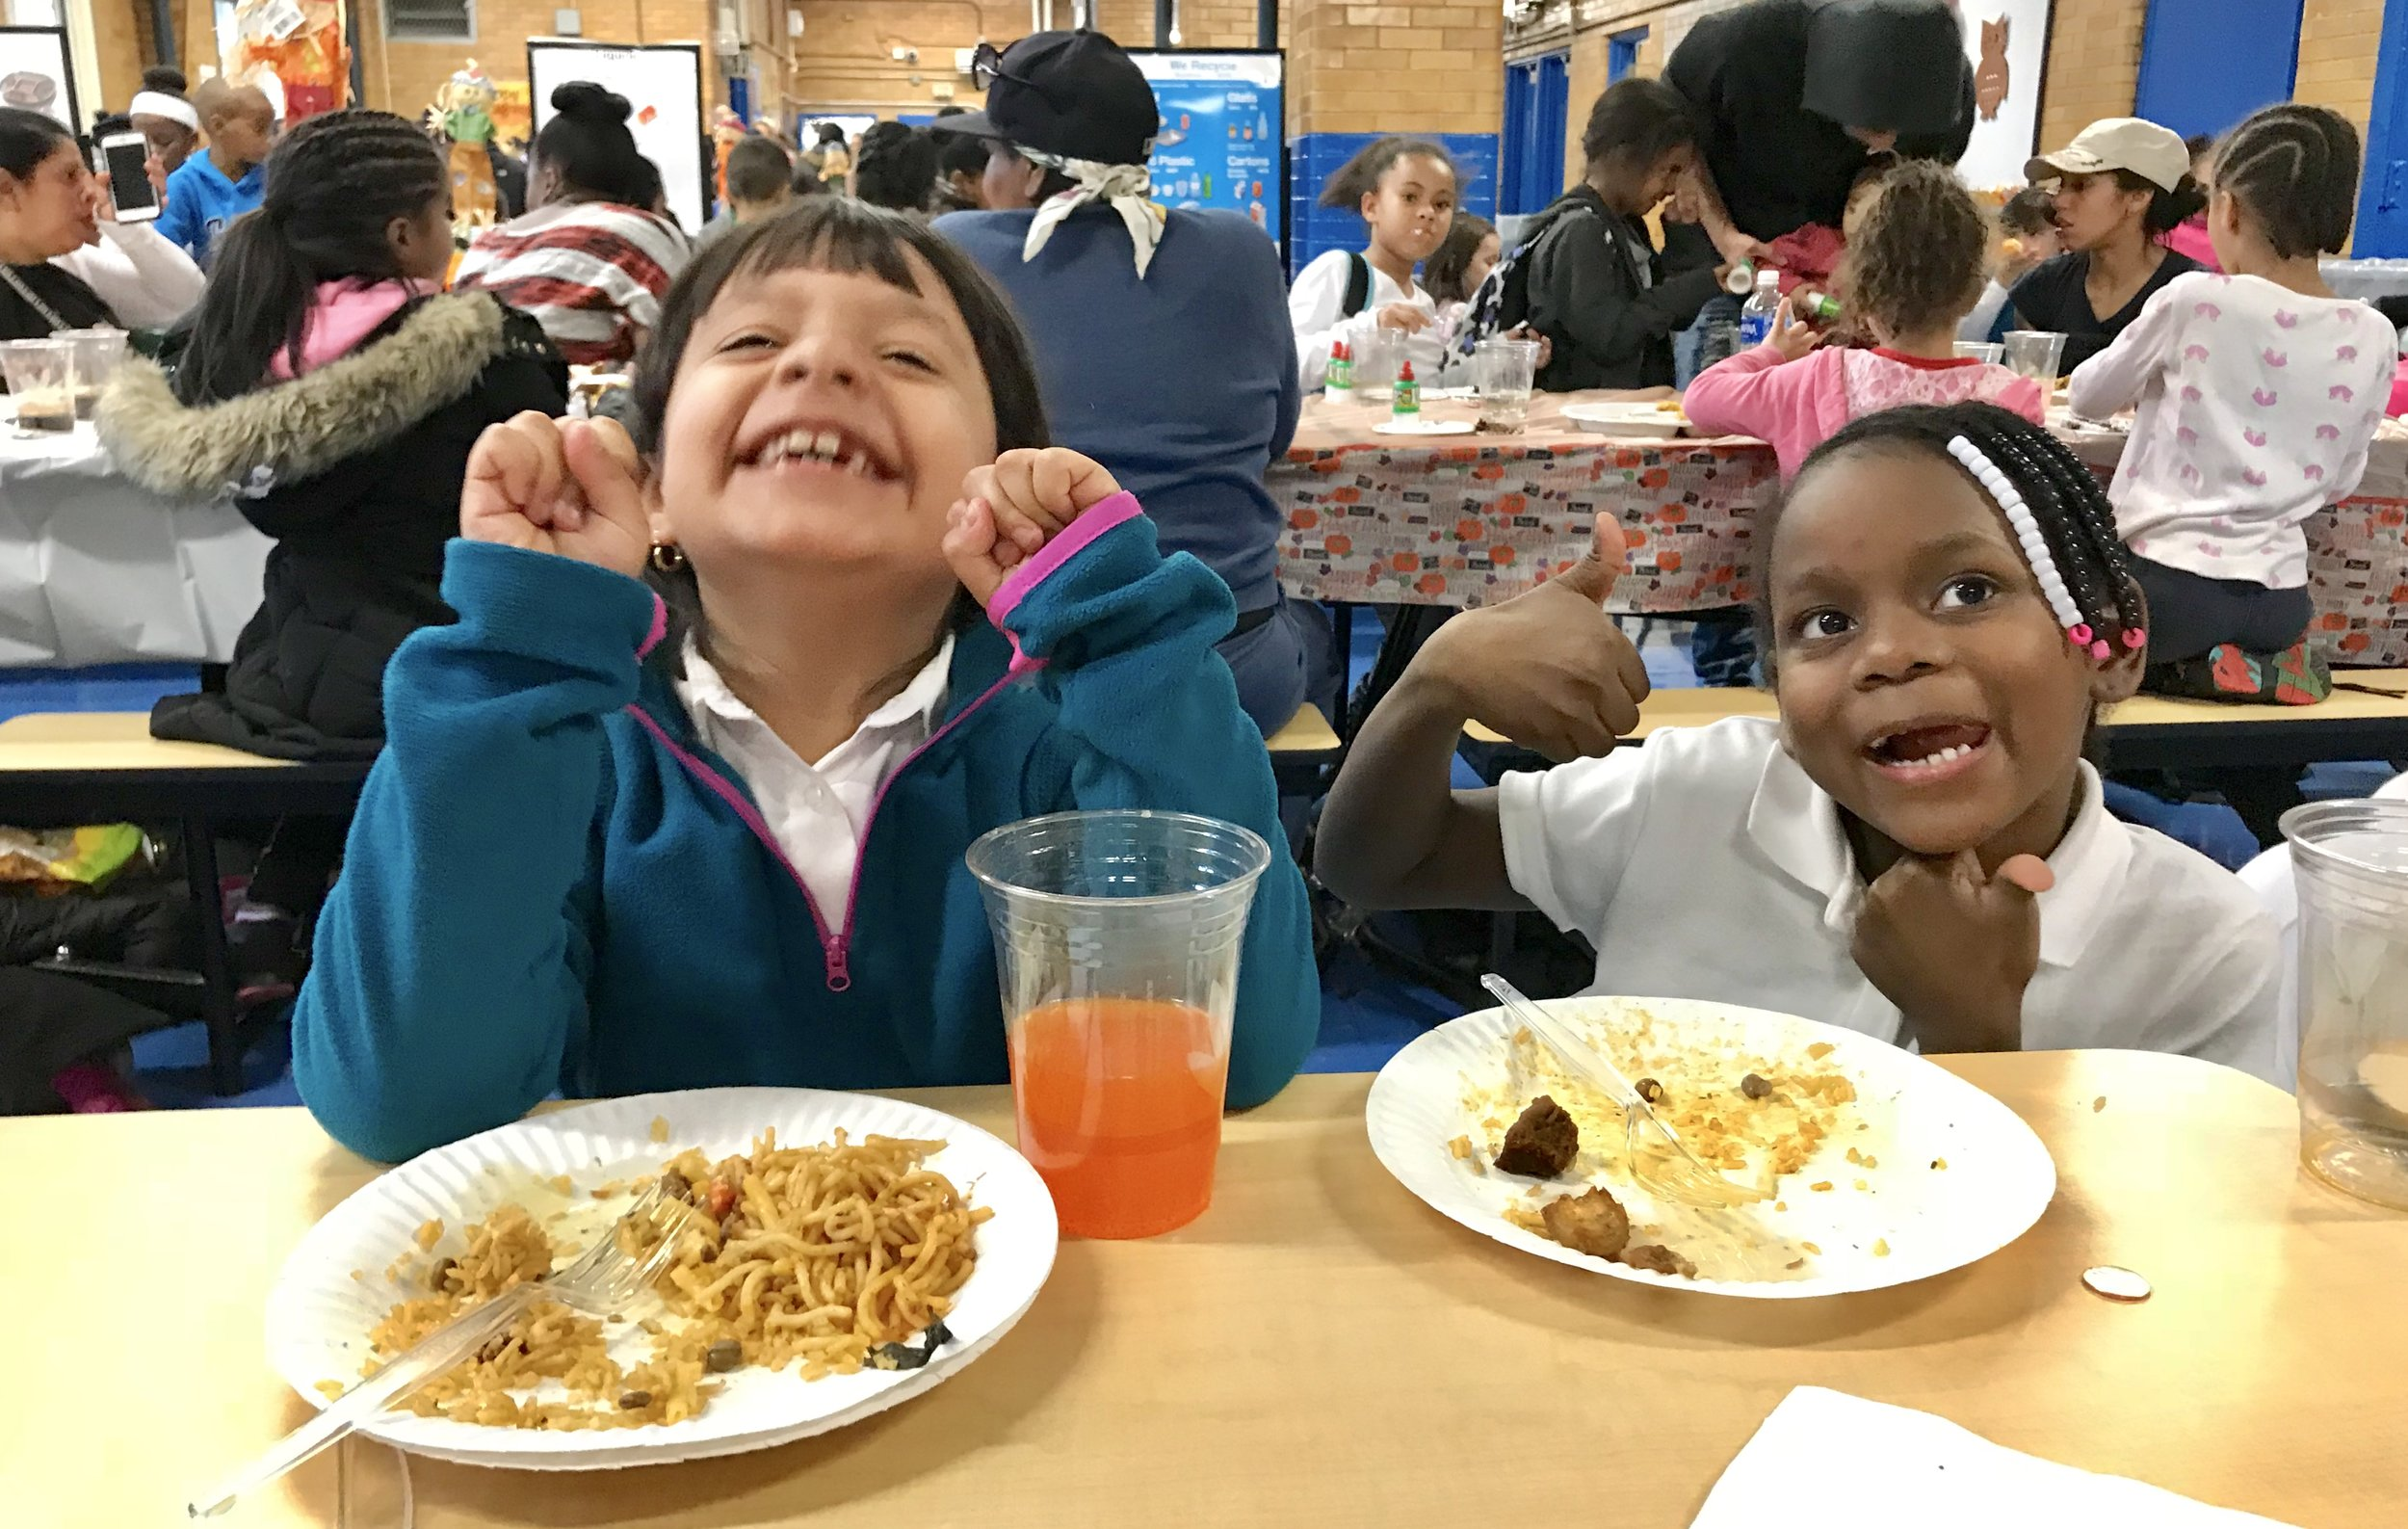 Smiles aplenty at the annual P.S. 91x Thanksgiving Feast.